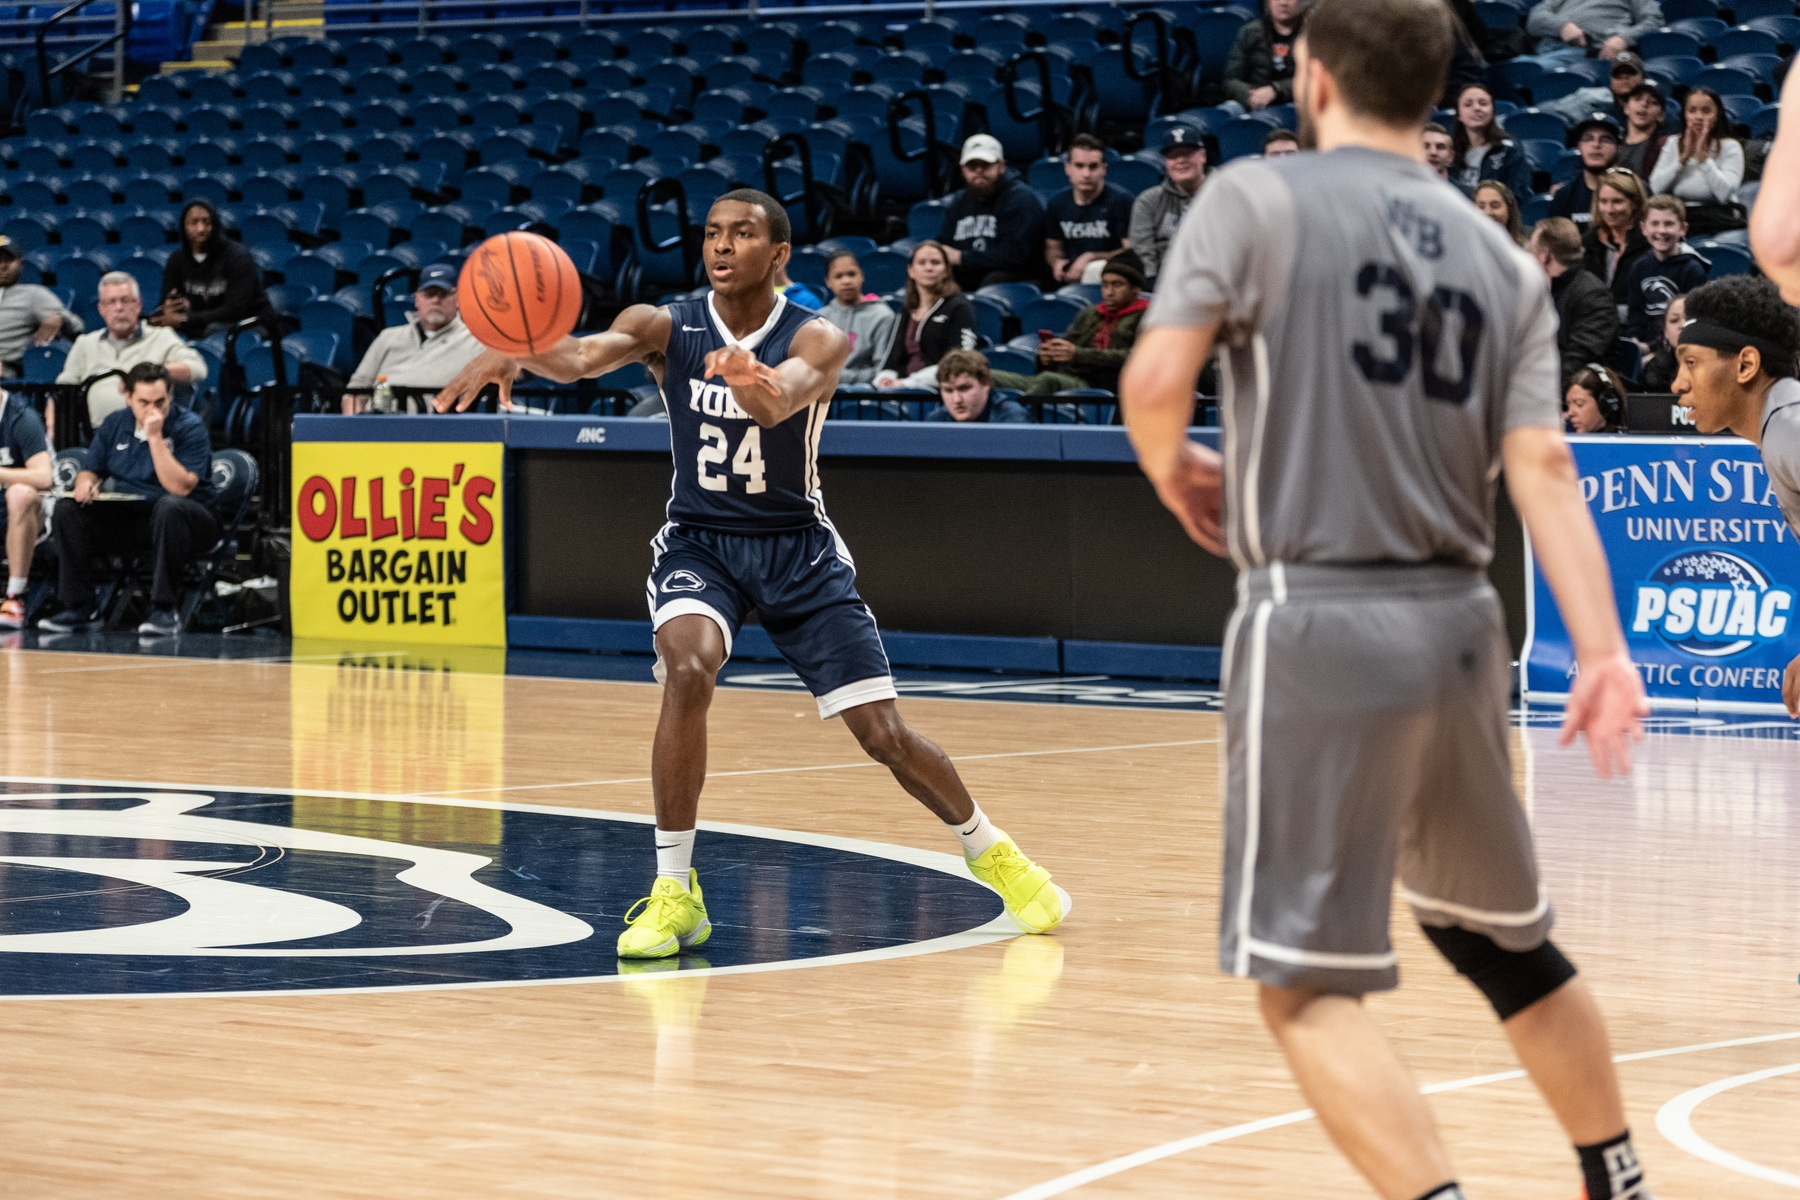 John Gillespie swings the ball around the court during the PSUAC Championship Game last weekend.